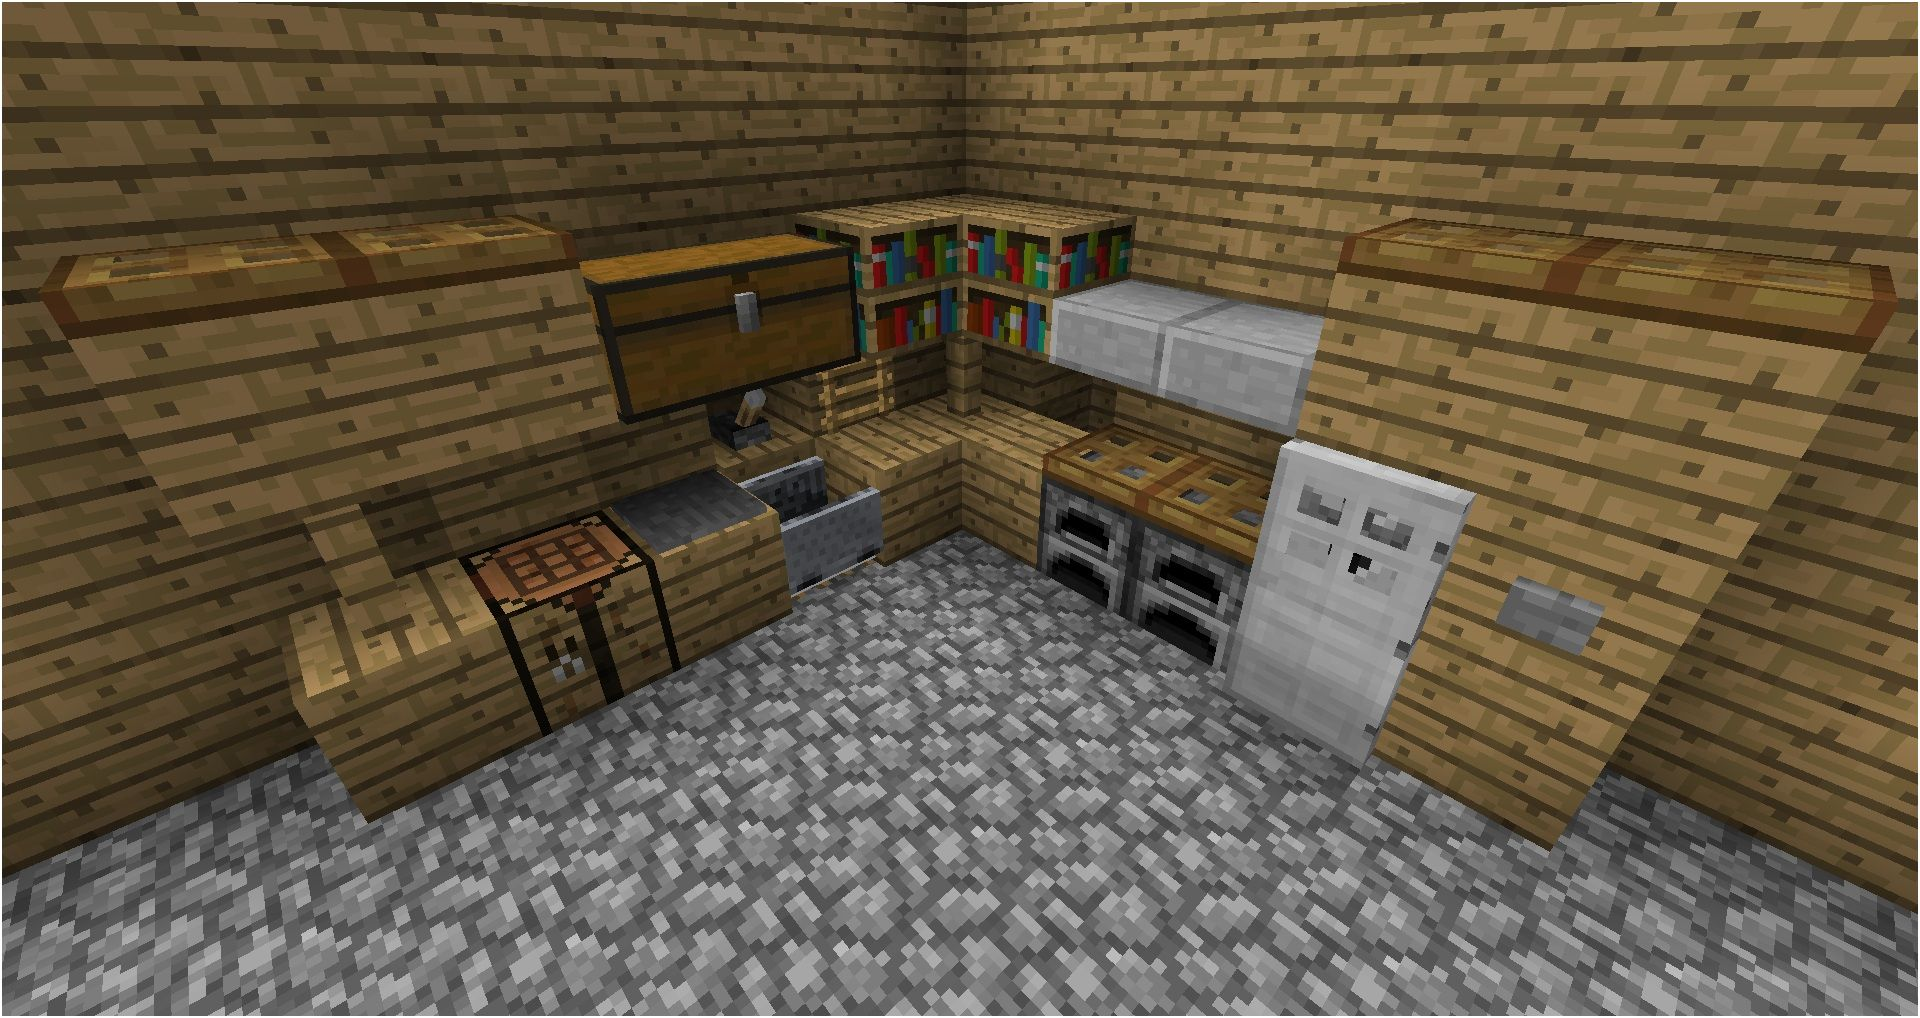 11 Excellent Minecraft Interior Design Kitchen Image Minecraft Interior Design Minecraft Room Minecraft Kitchen Ideas